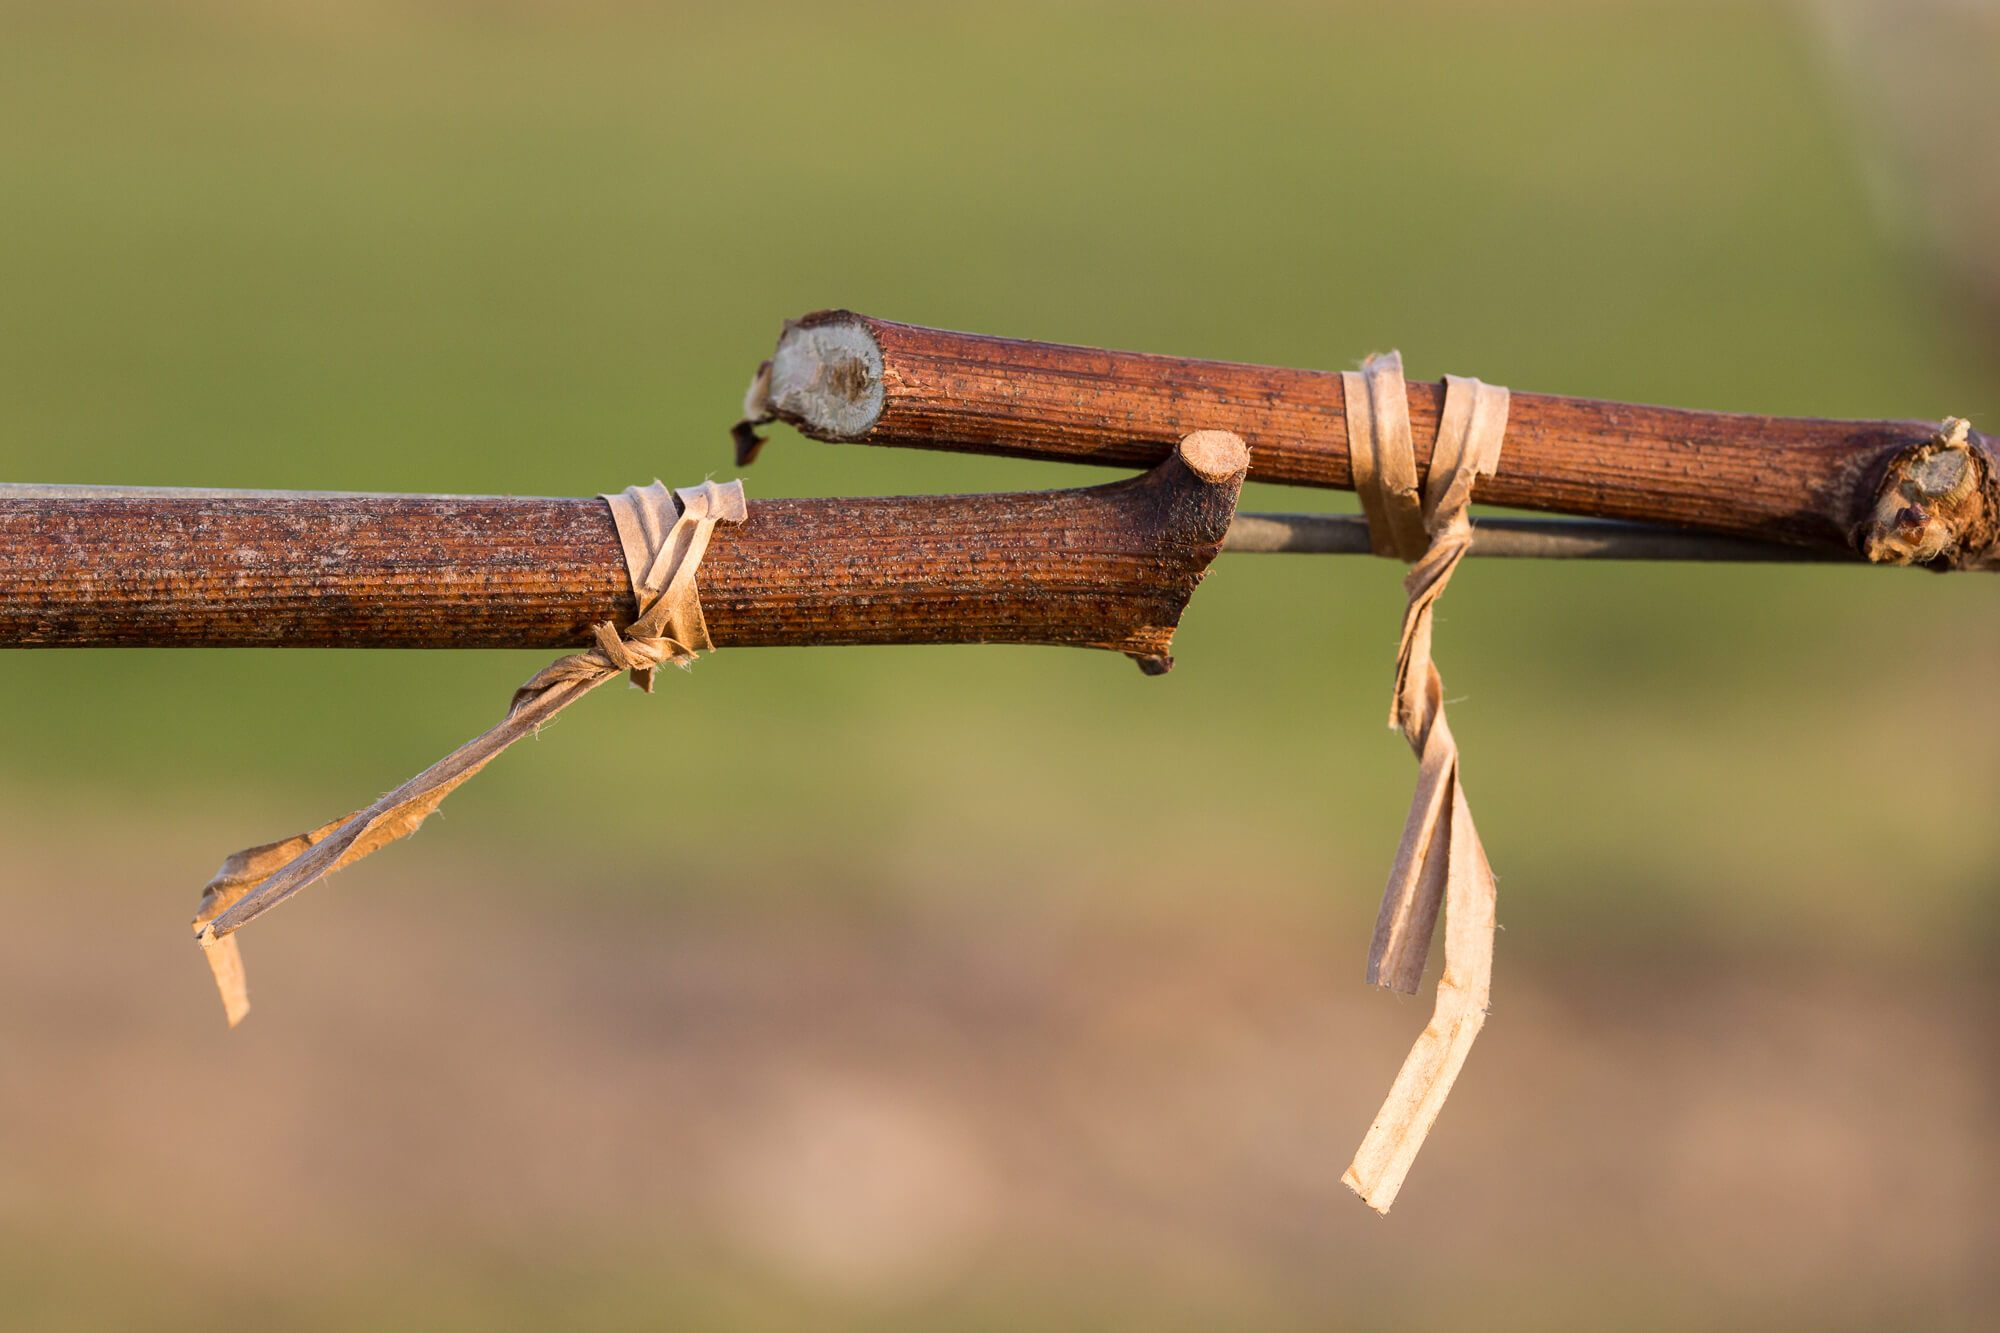 Cane Tied to Wire